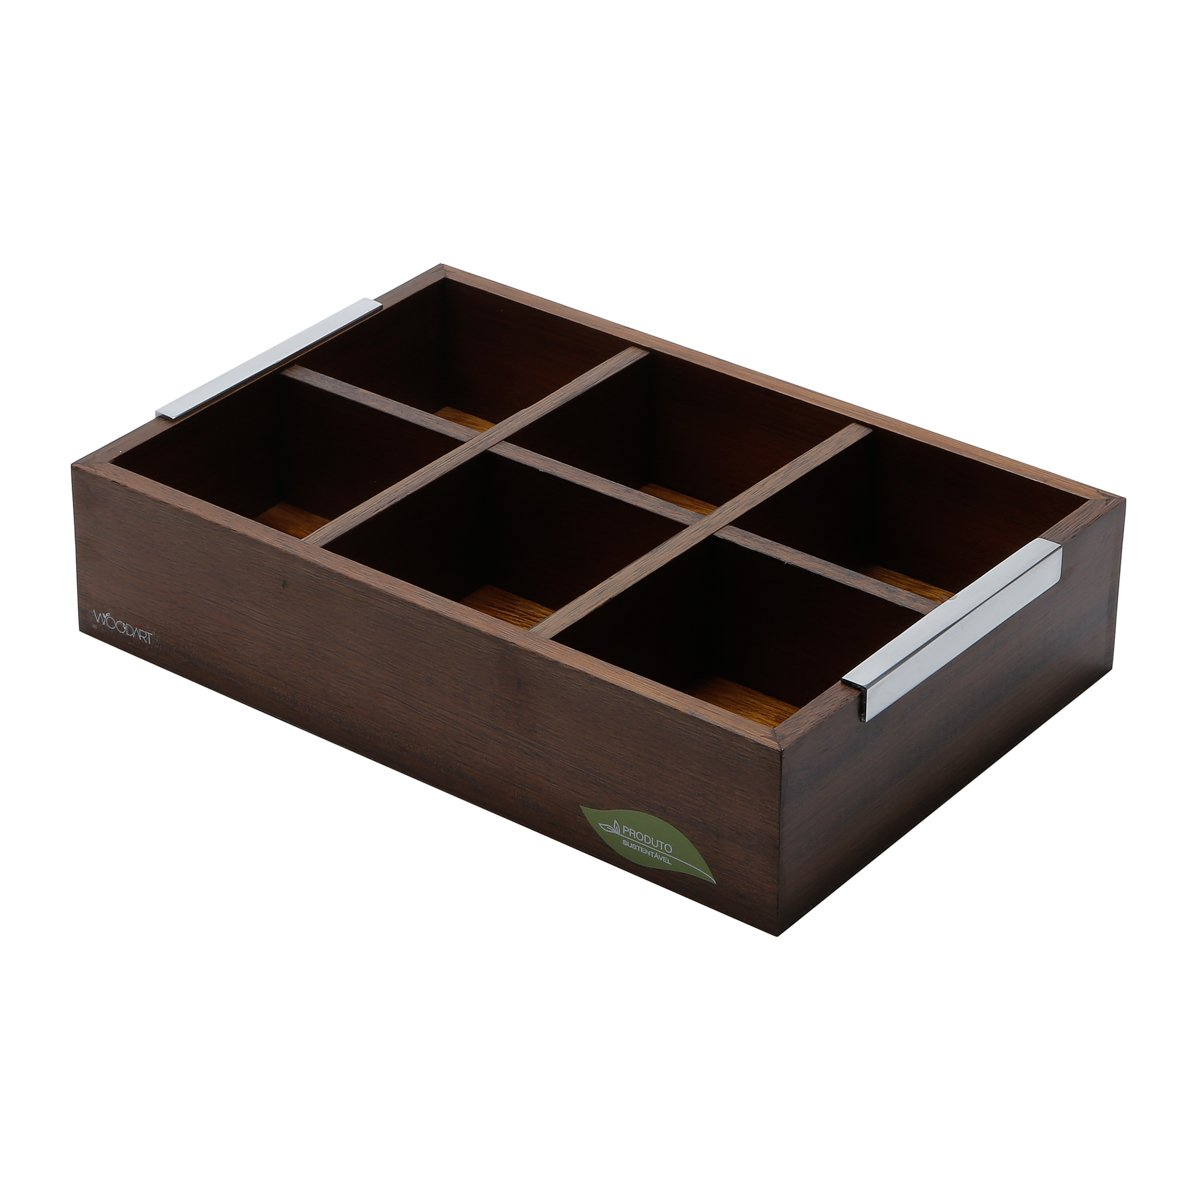 WOODART Wooden Tea Box with 6 compartments